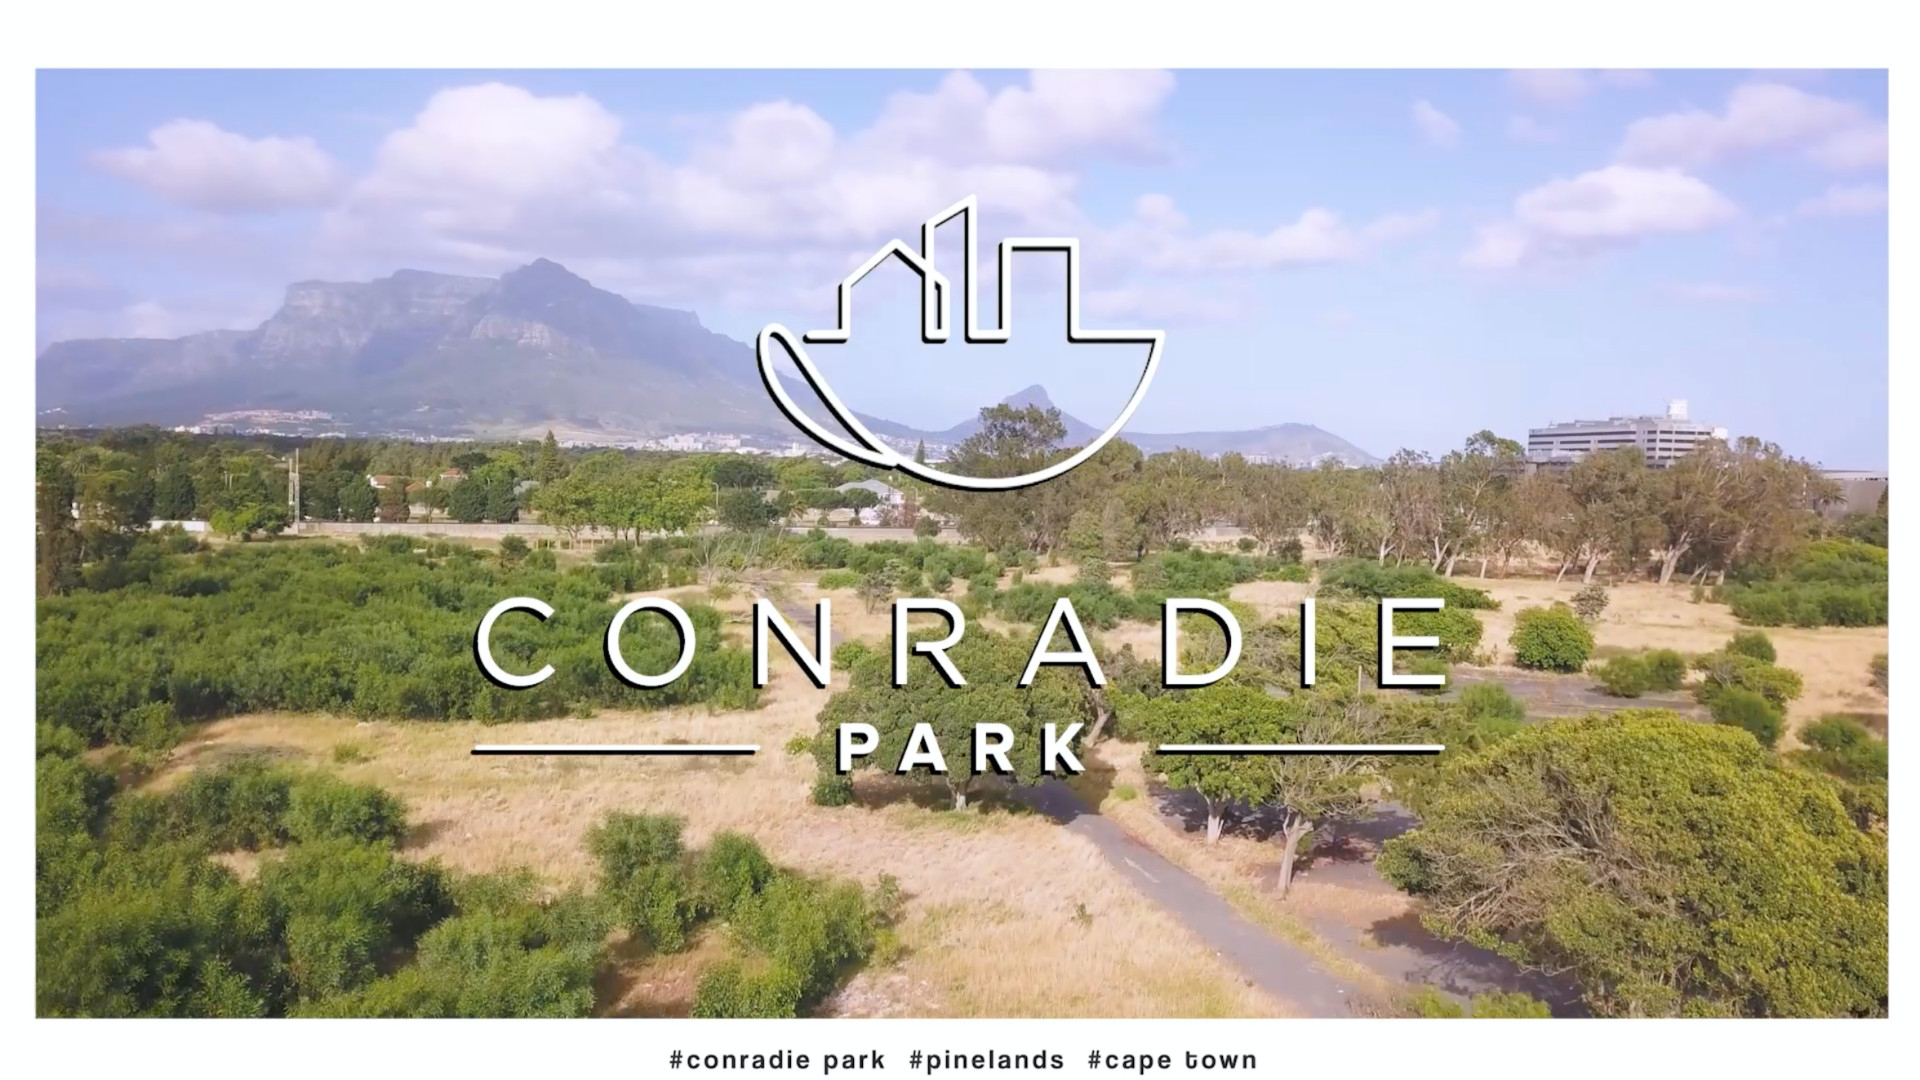 Conradie Park Development